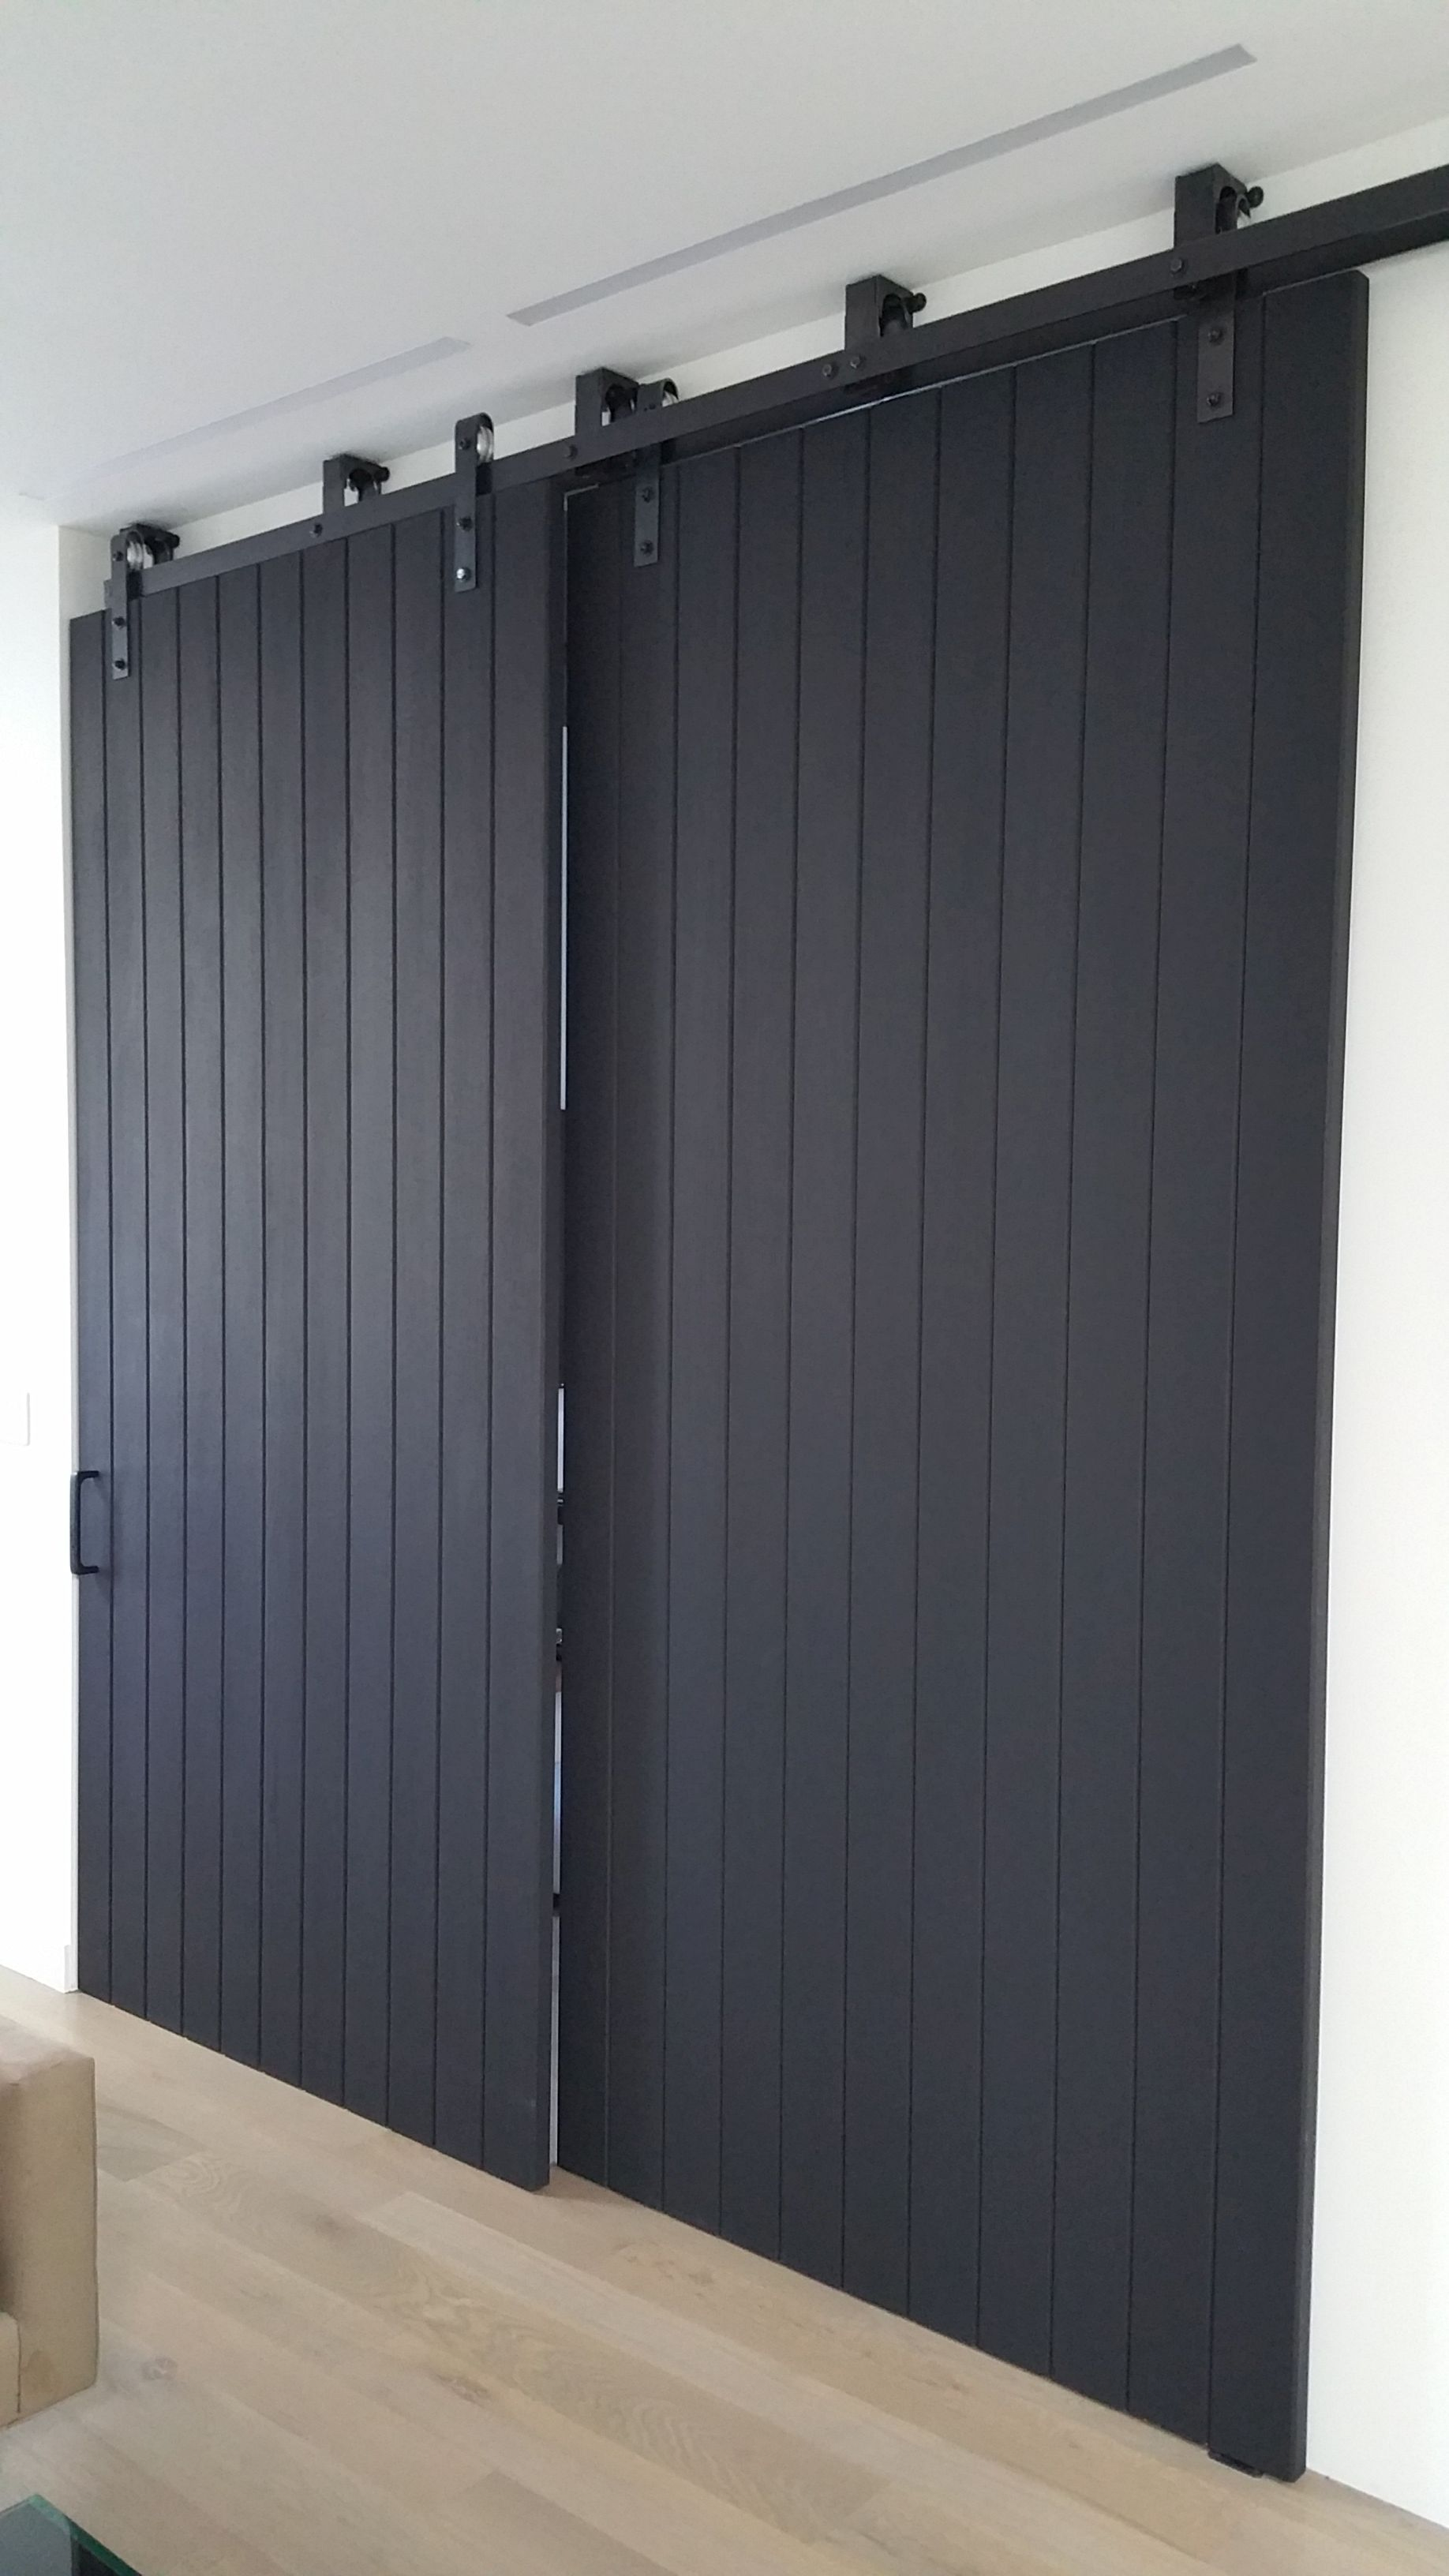 Black Oak Double Sliding Barn Doors Home Inside Barn Doors Barn Door Sliding Door Large Slidin Sliding Doors Interior Wood Doors Interior Interior Barn Doors